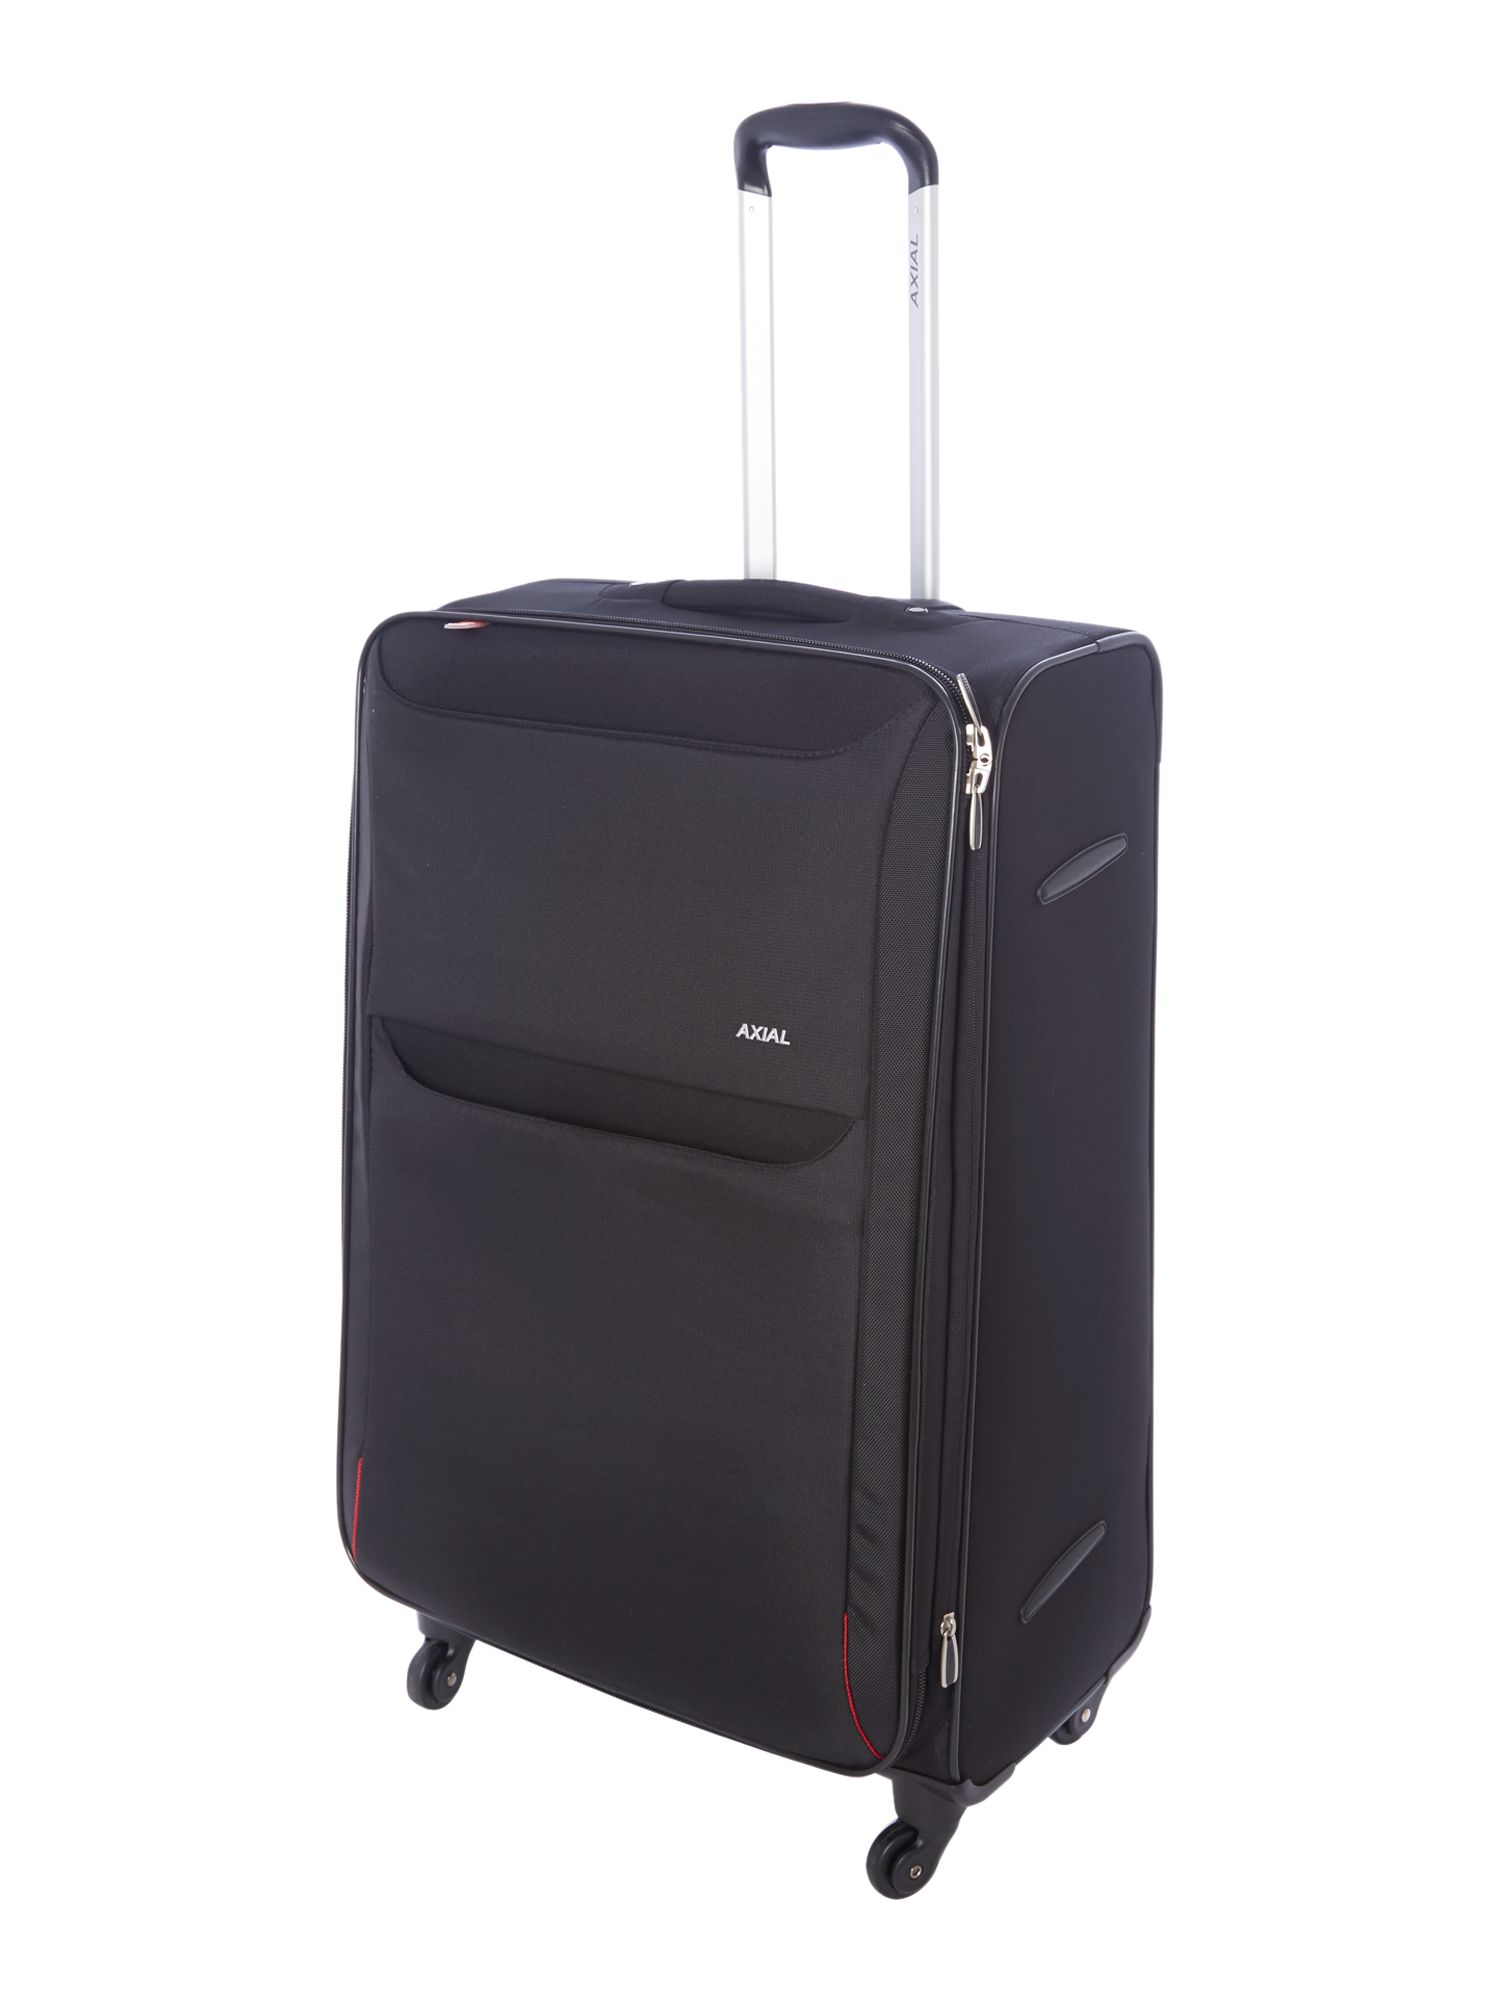 Axial 350 black 4 wheel soft large case